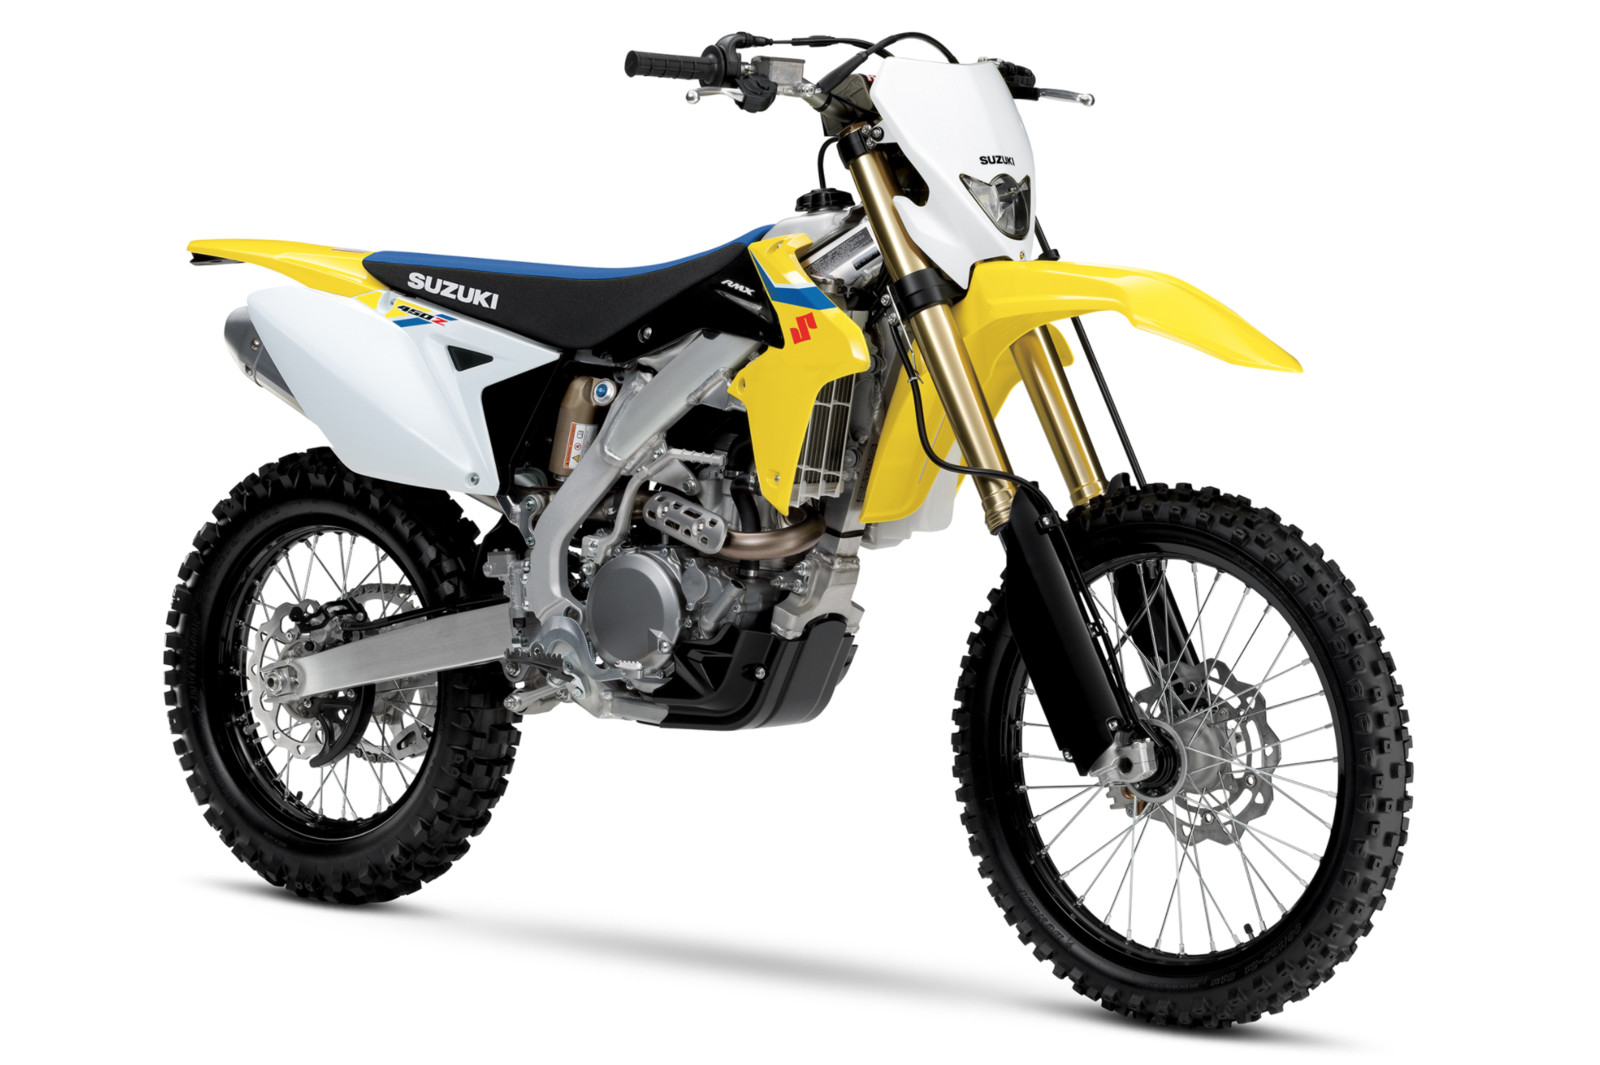 First Look: 2018 Suzuki RM-Z450X - First Look: 2018 Suzuki RM-Z450X, RM-Z250, and RM85 - Motocross Pictures - Vital MX